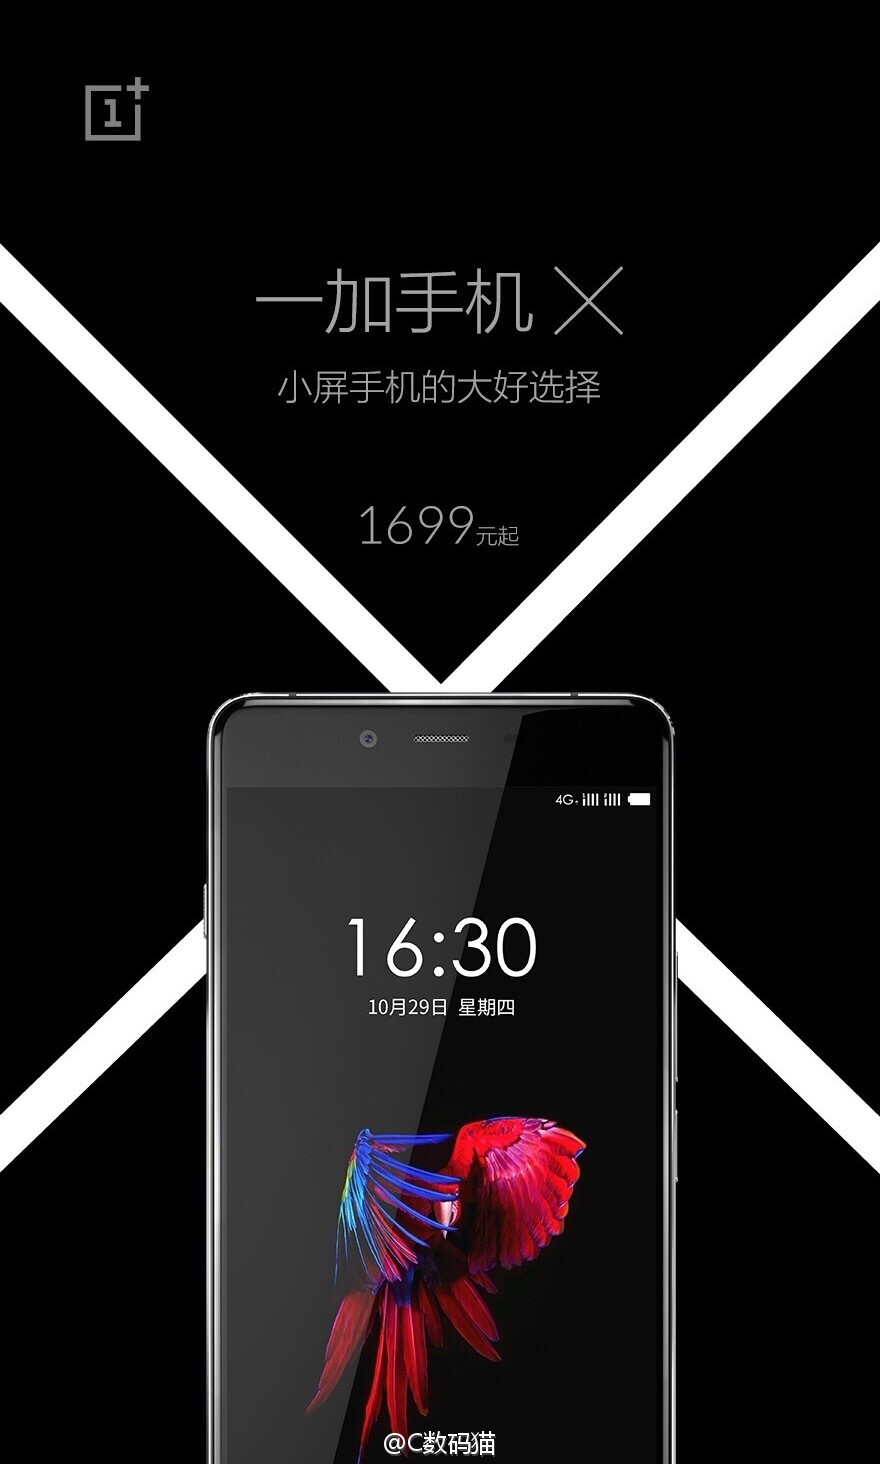 Alleged OnePlus X event poster leak reveals the eventual design and price tag